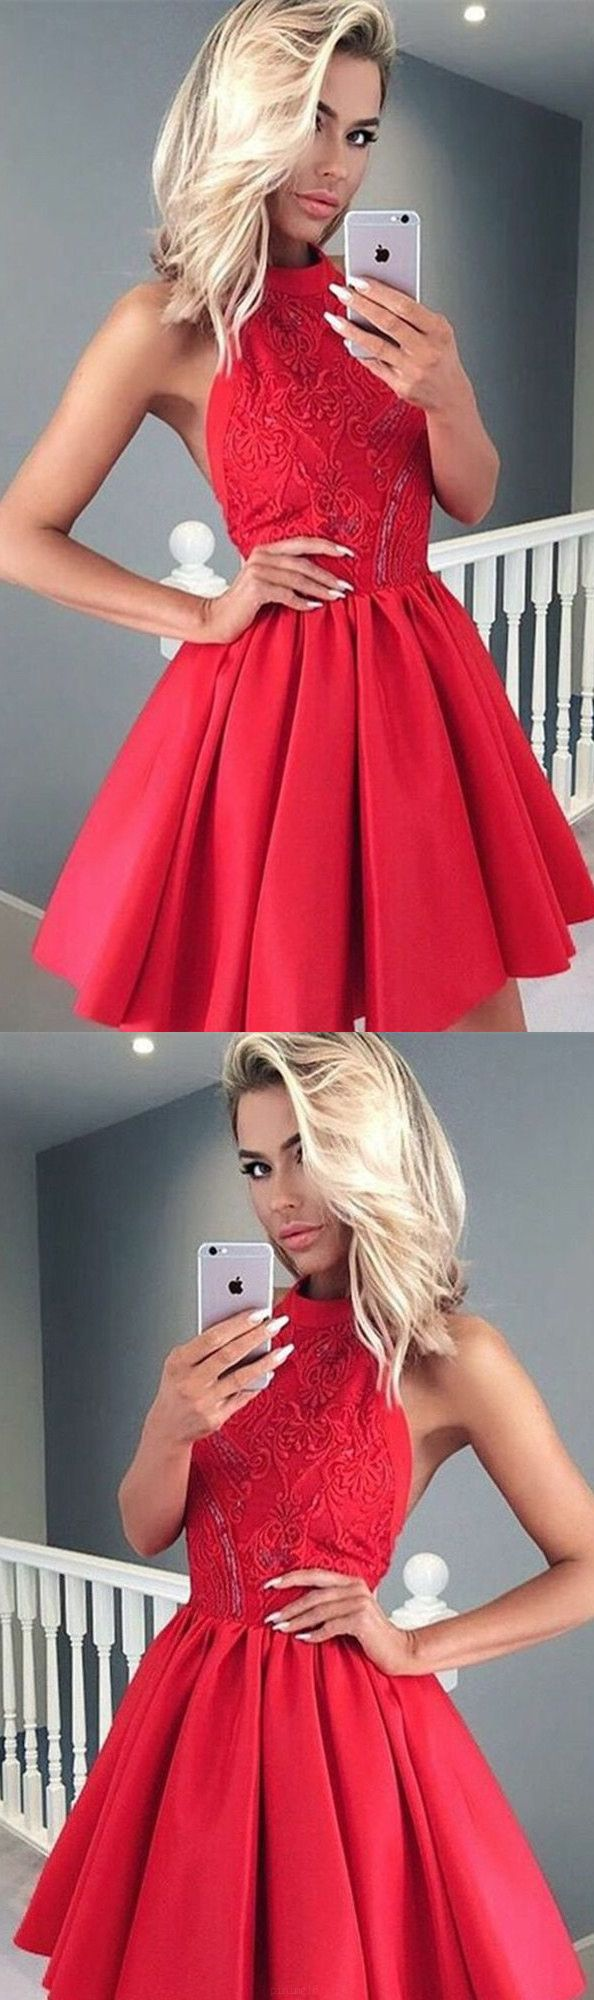 Alineprincess prom party dresses short red dresses with backless